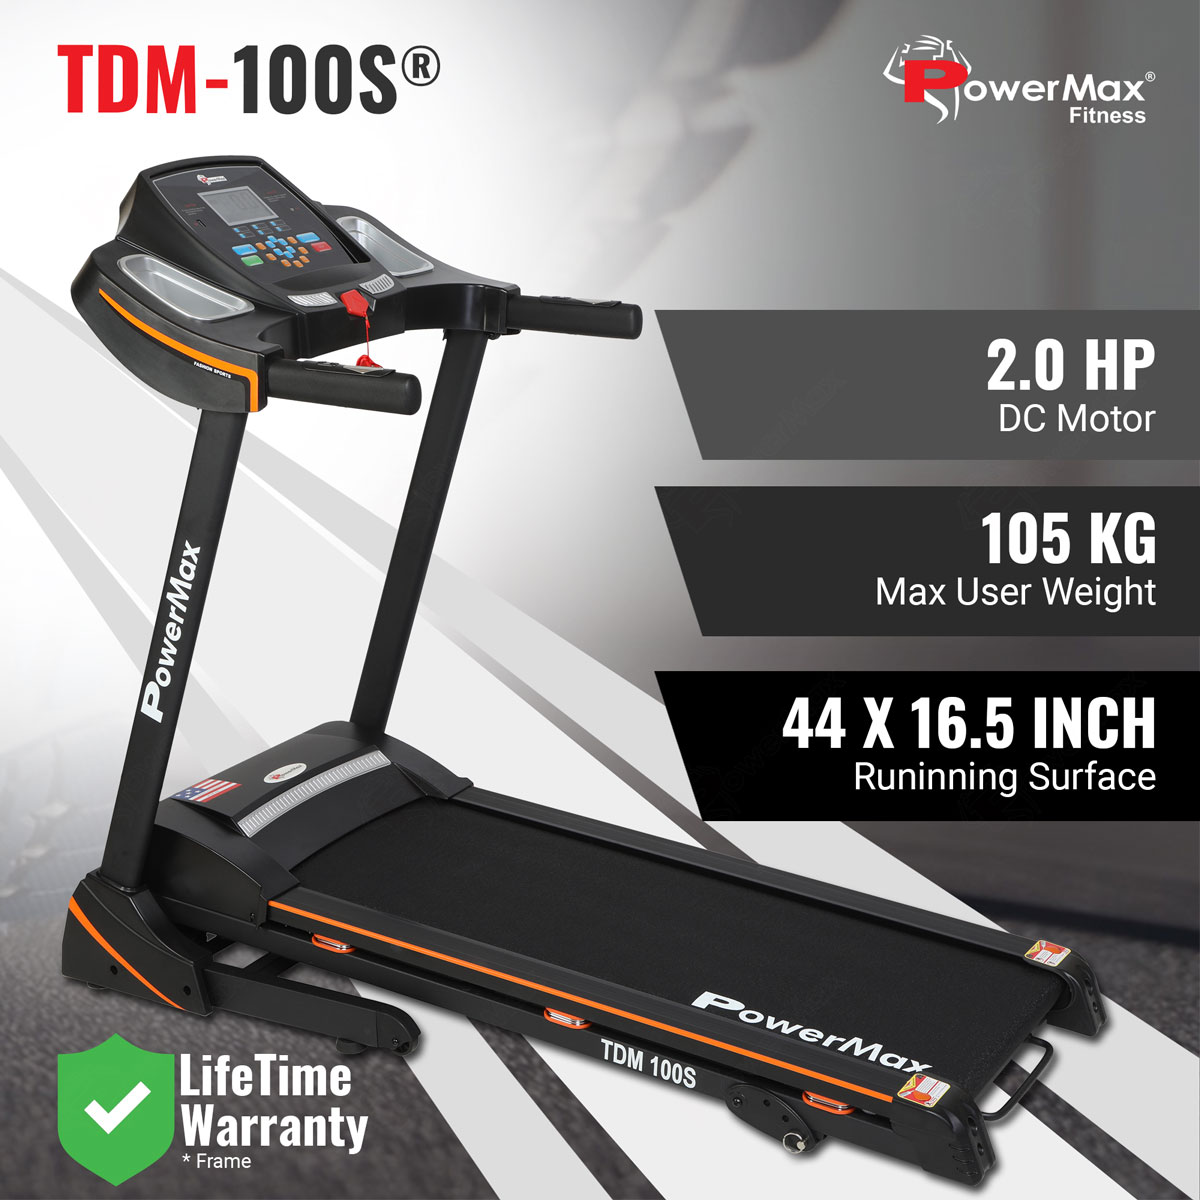 TDM-100S® With Jumping wheels and Semi-Auto Lubrication